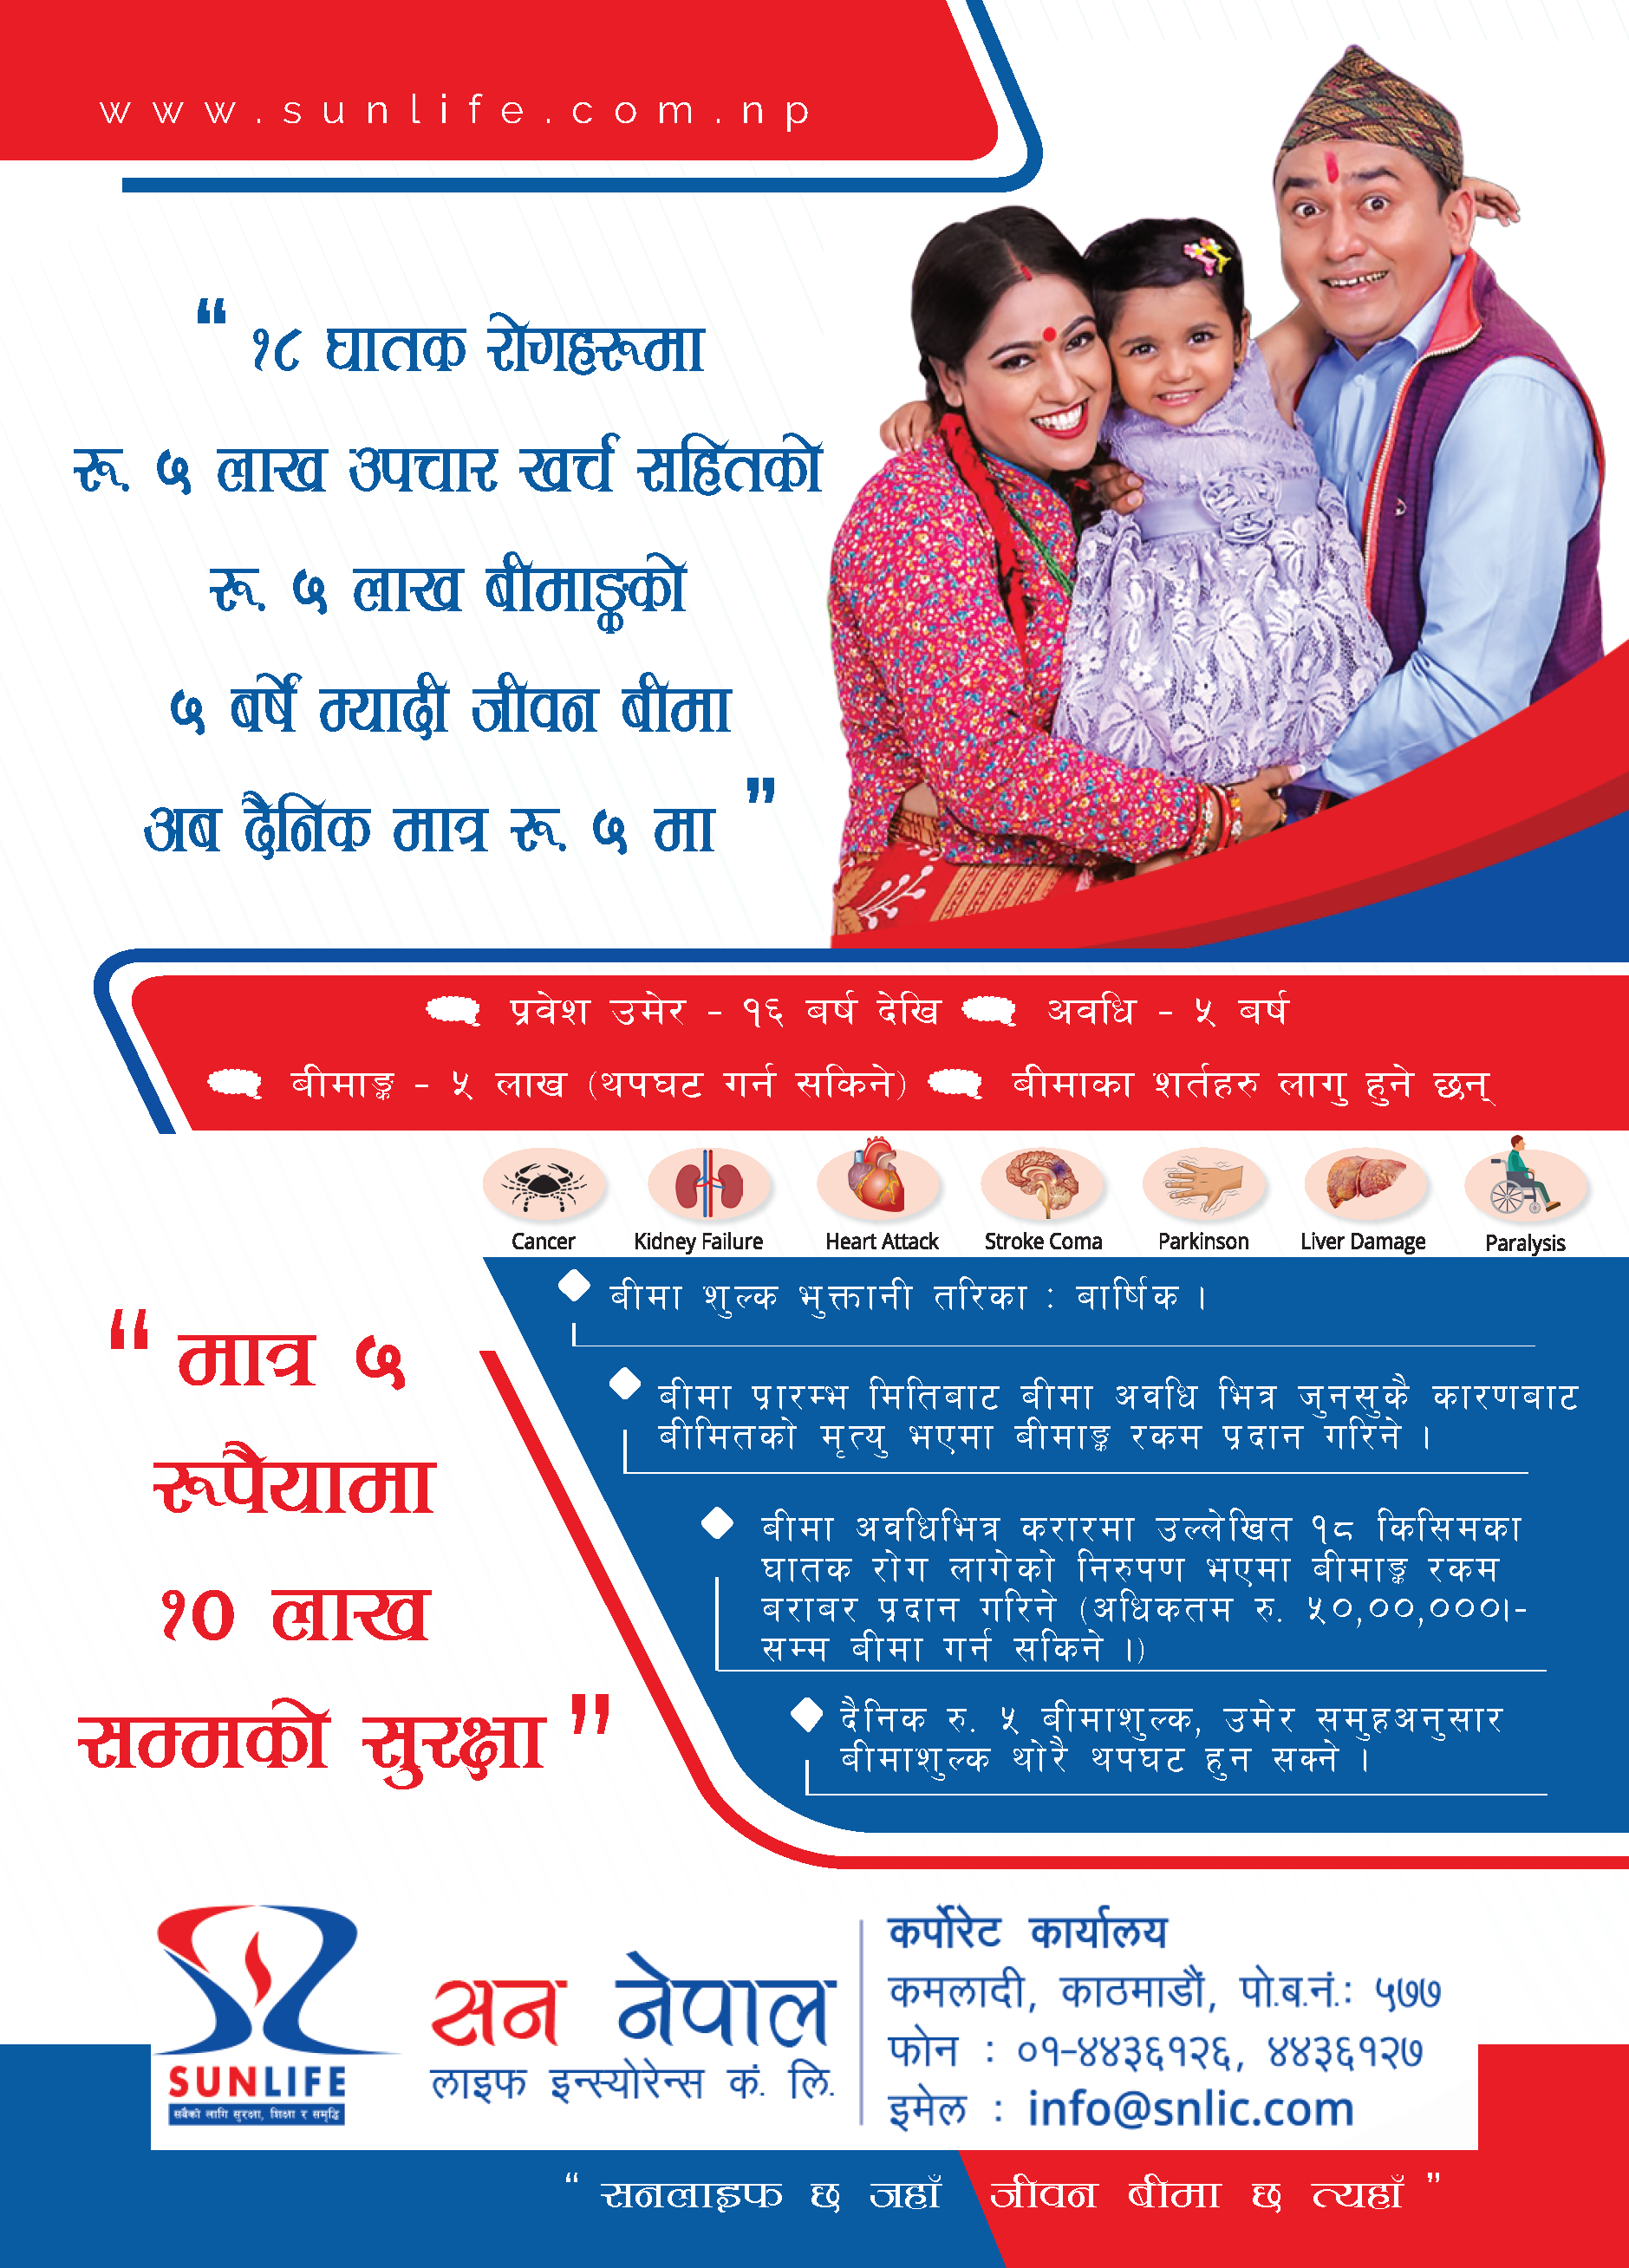 Just 5 Rupee per day to get 10 lakhs benefit